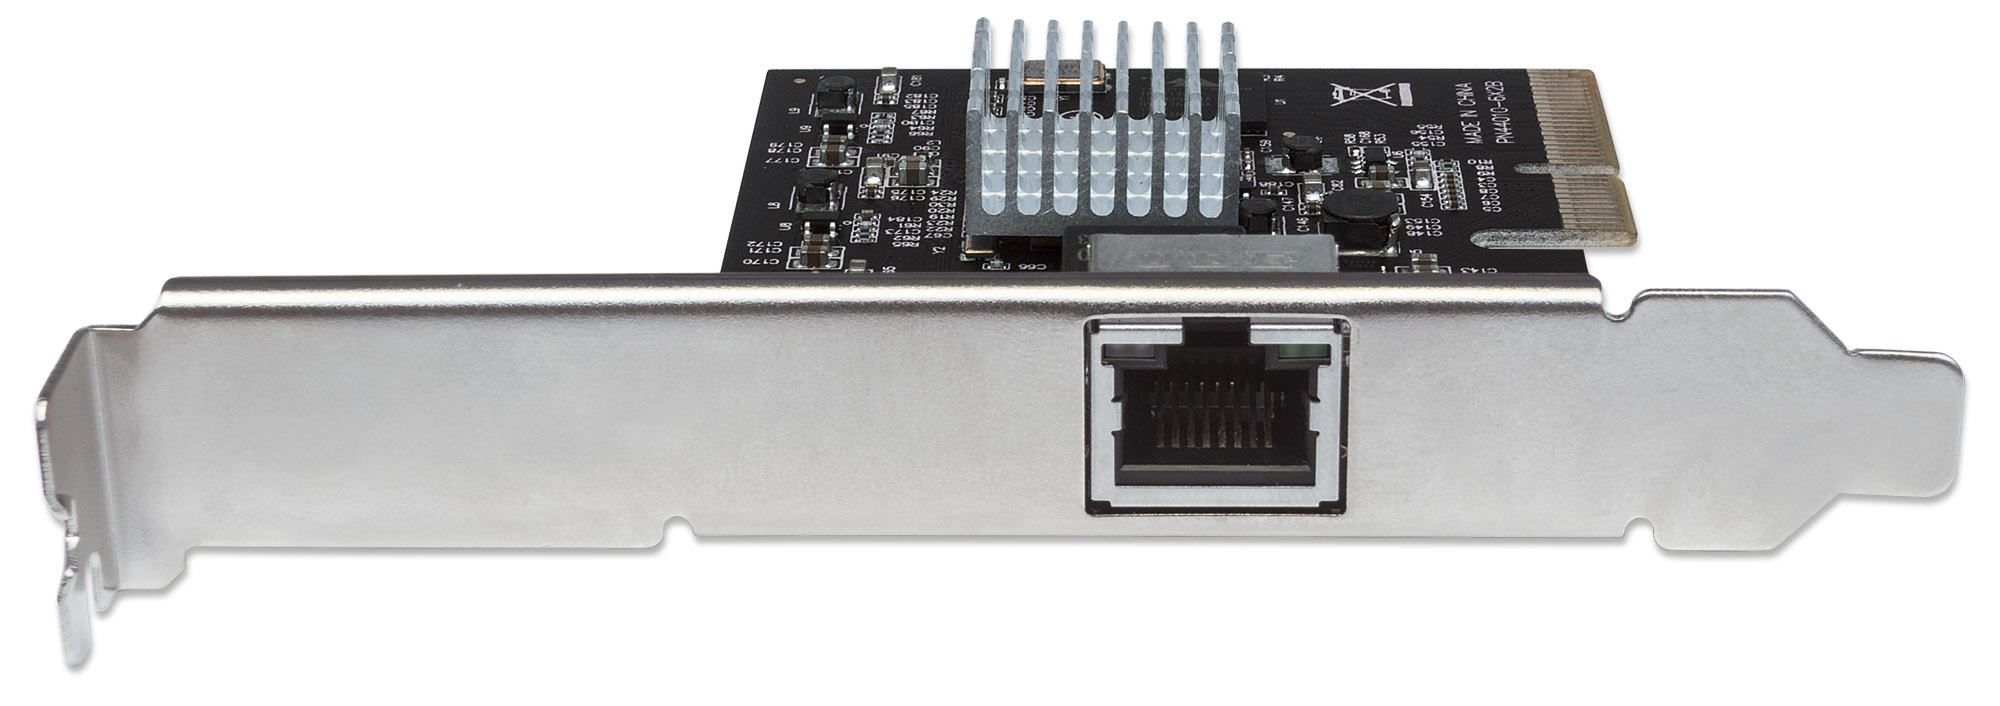 10 Gigabit PCI Express Network Card